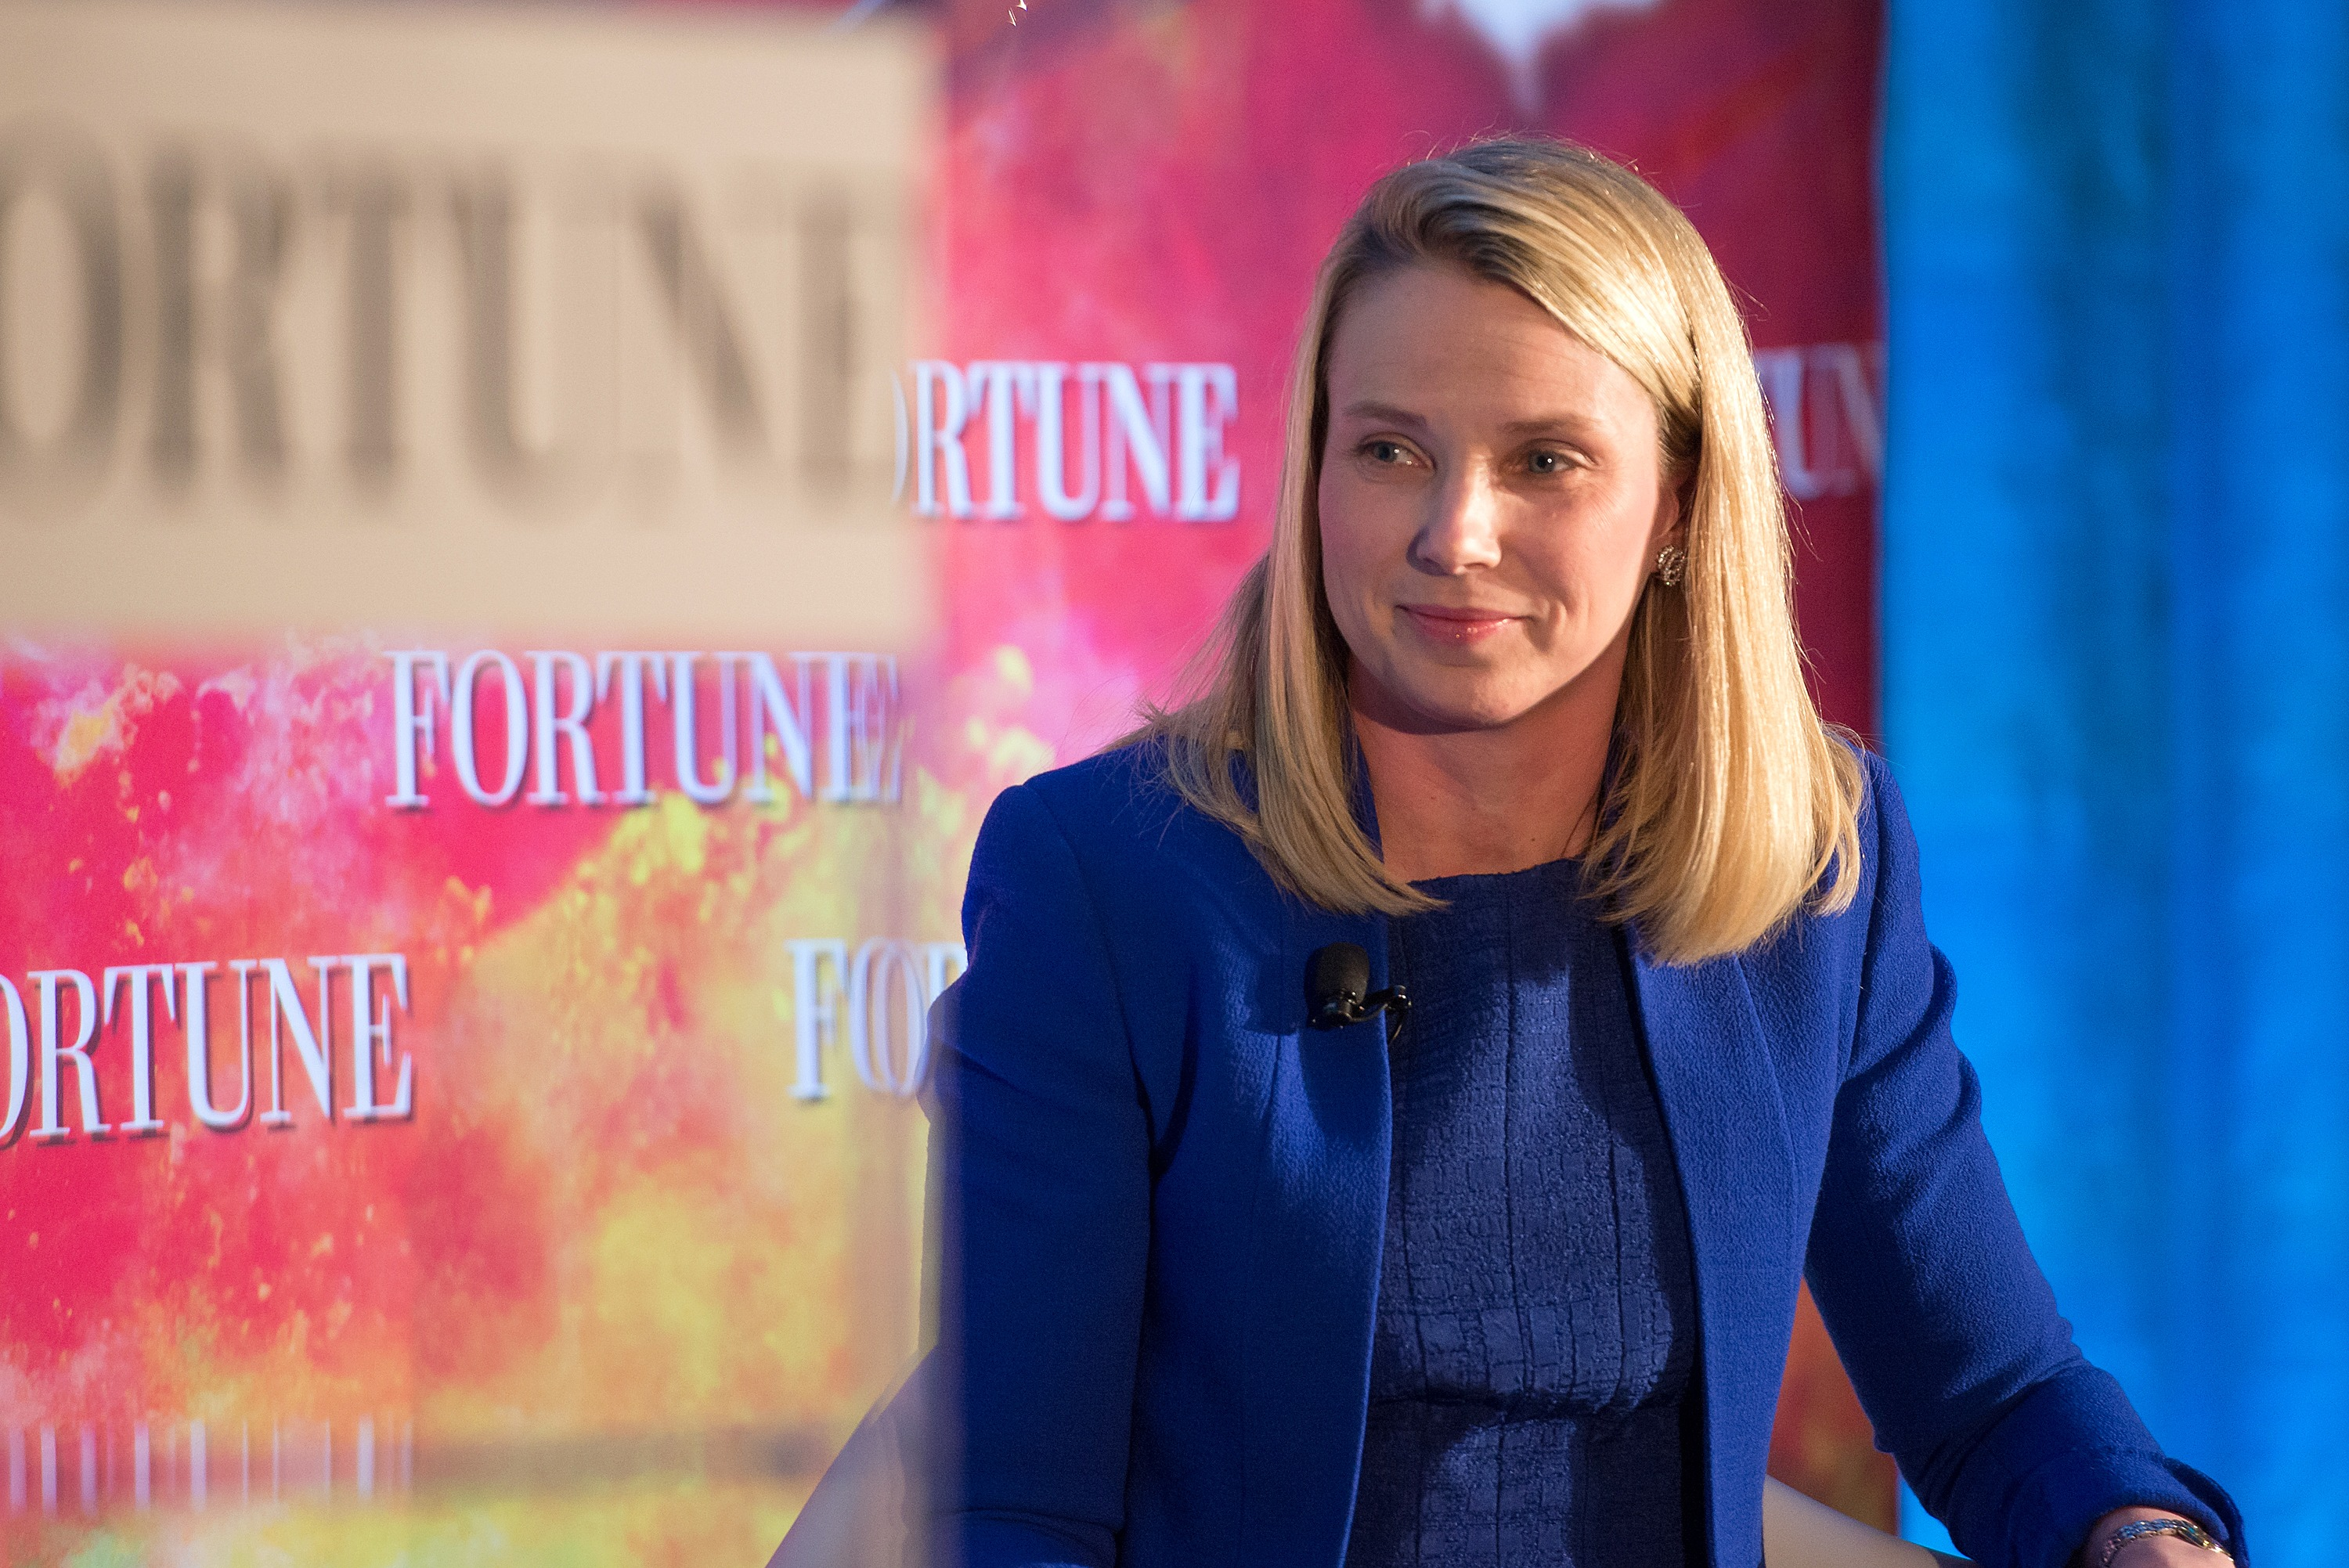 NEW YORK, NY - MAY 18:  President and CEO of Yahoo Marissa Mayer attends Fortune Magazines 2015 Most Powerful Women Evening With NYC at Time Warner Center on May 18, 2015 in New York City.  (Photo by Mike Pont/Getty Images)